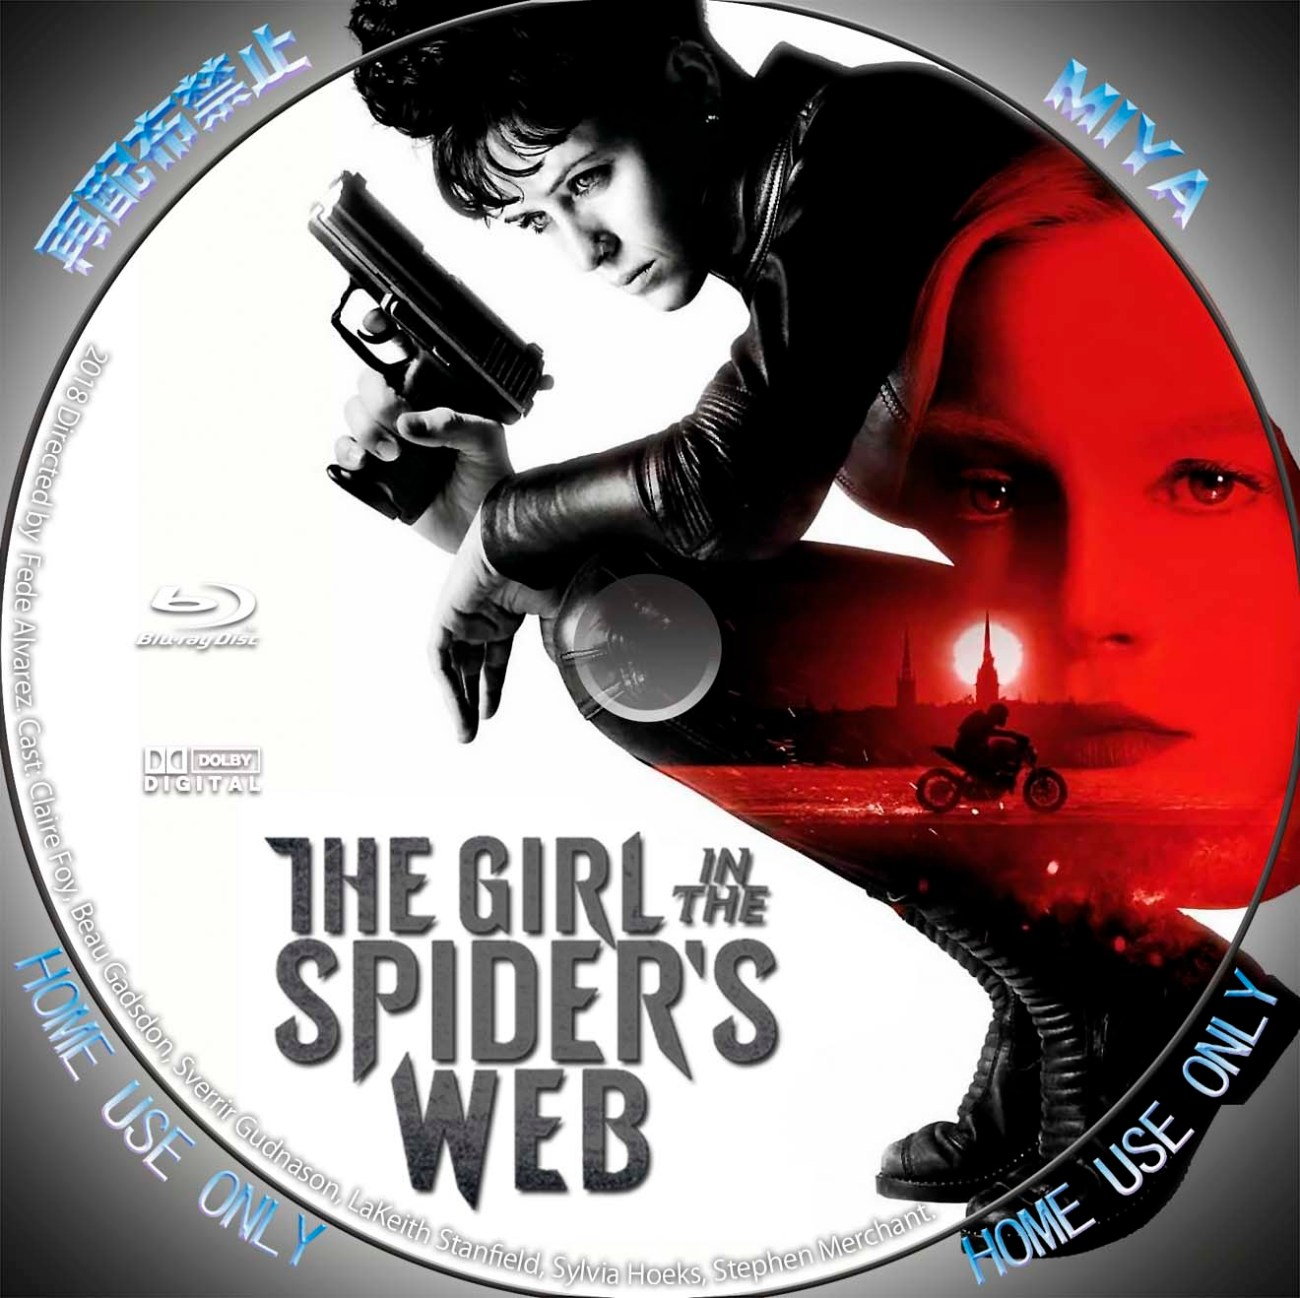 The Girl in the Spider's Web Blu-ray Label